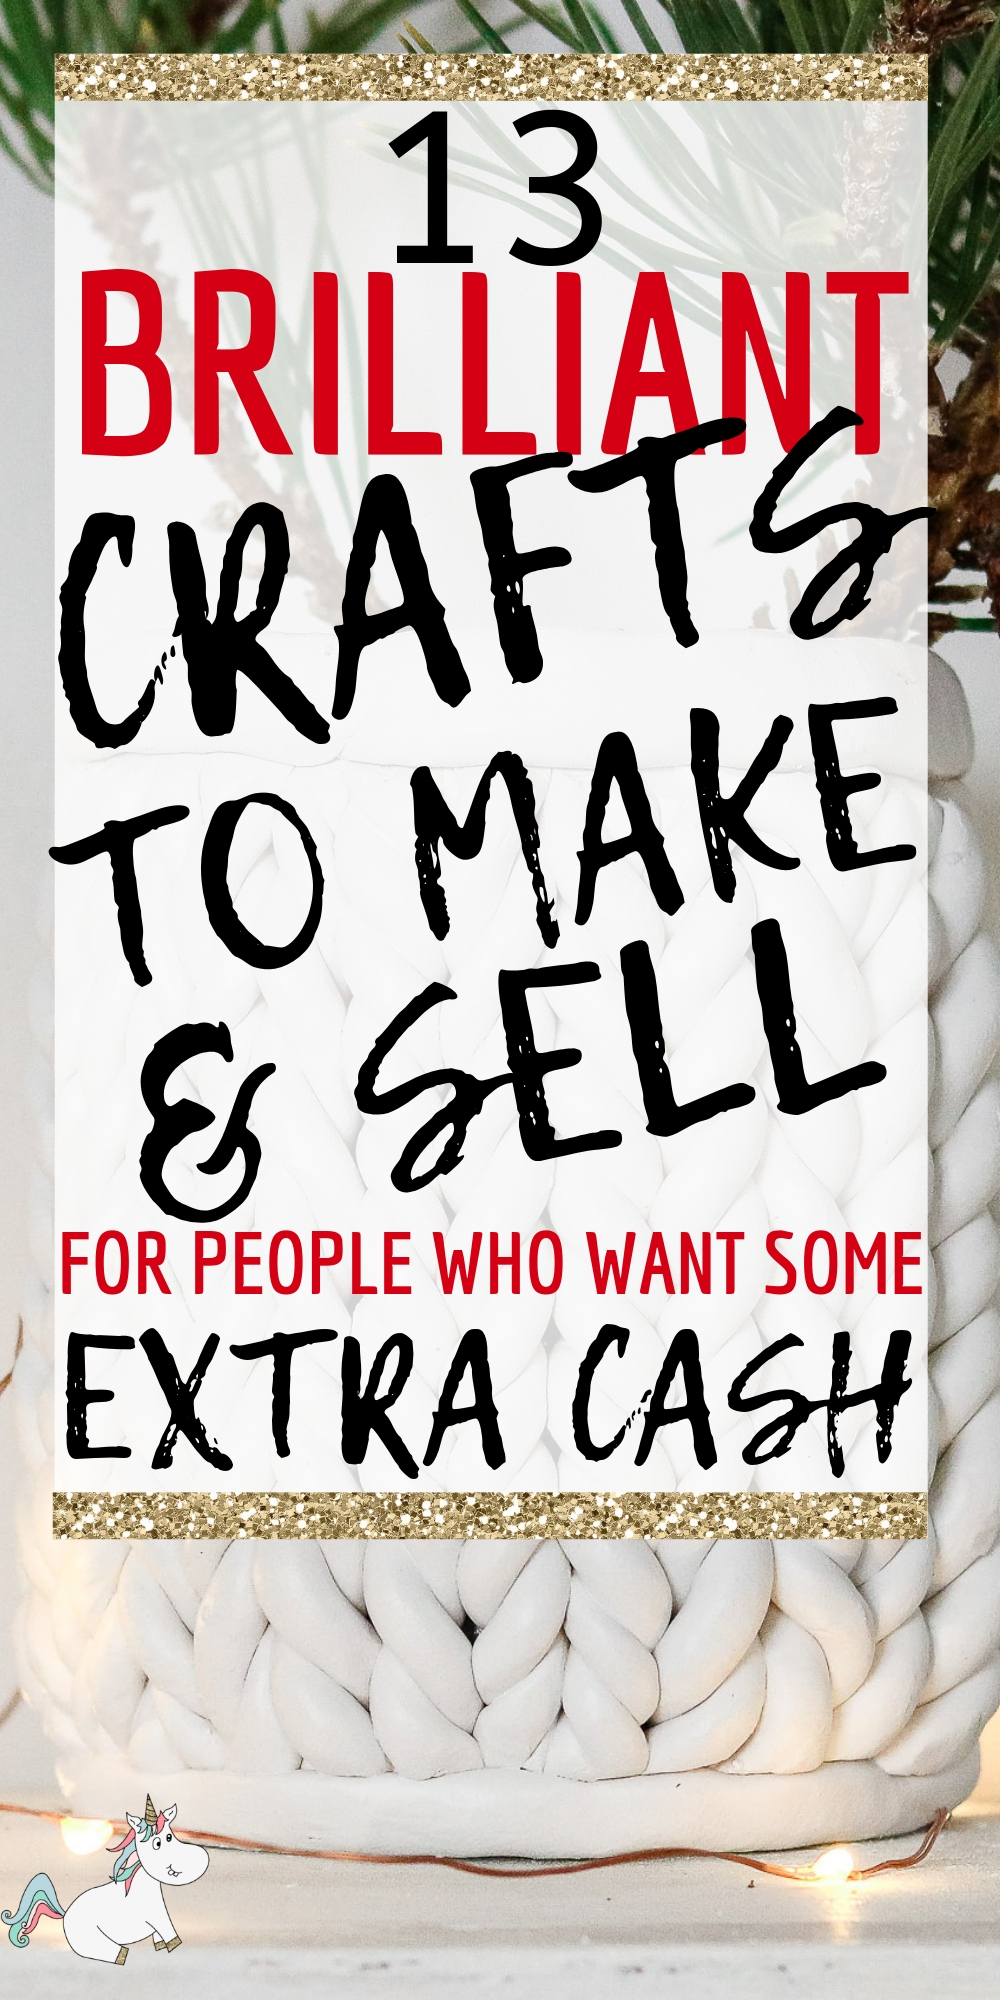 13 Amazing Easy Crafts To Make and Sell For Extra Cash! If you have an online craft business or are looking to start one you'll love these easy crafts to make & sell for profit! They're all cheap crafts that you can do quickly which means you can make money from home quickly! The perfect side hustle idea! Click to check them out! #themummyfront